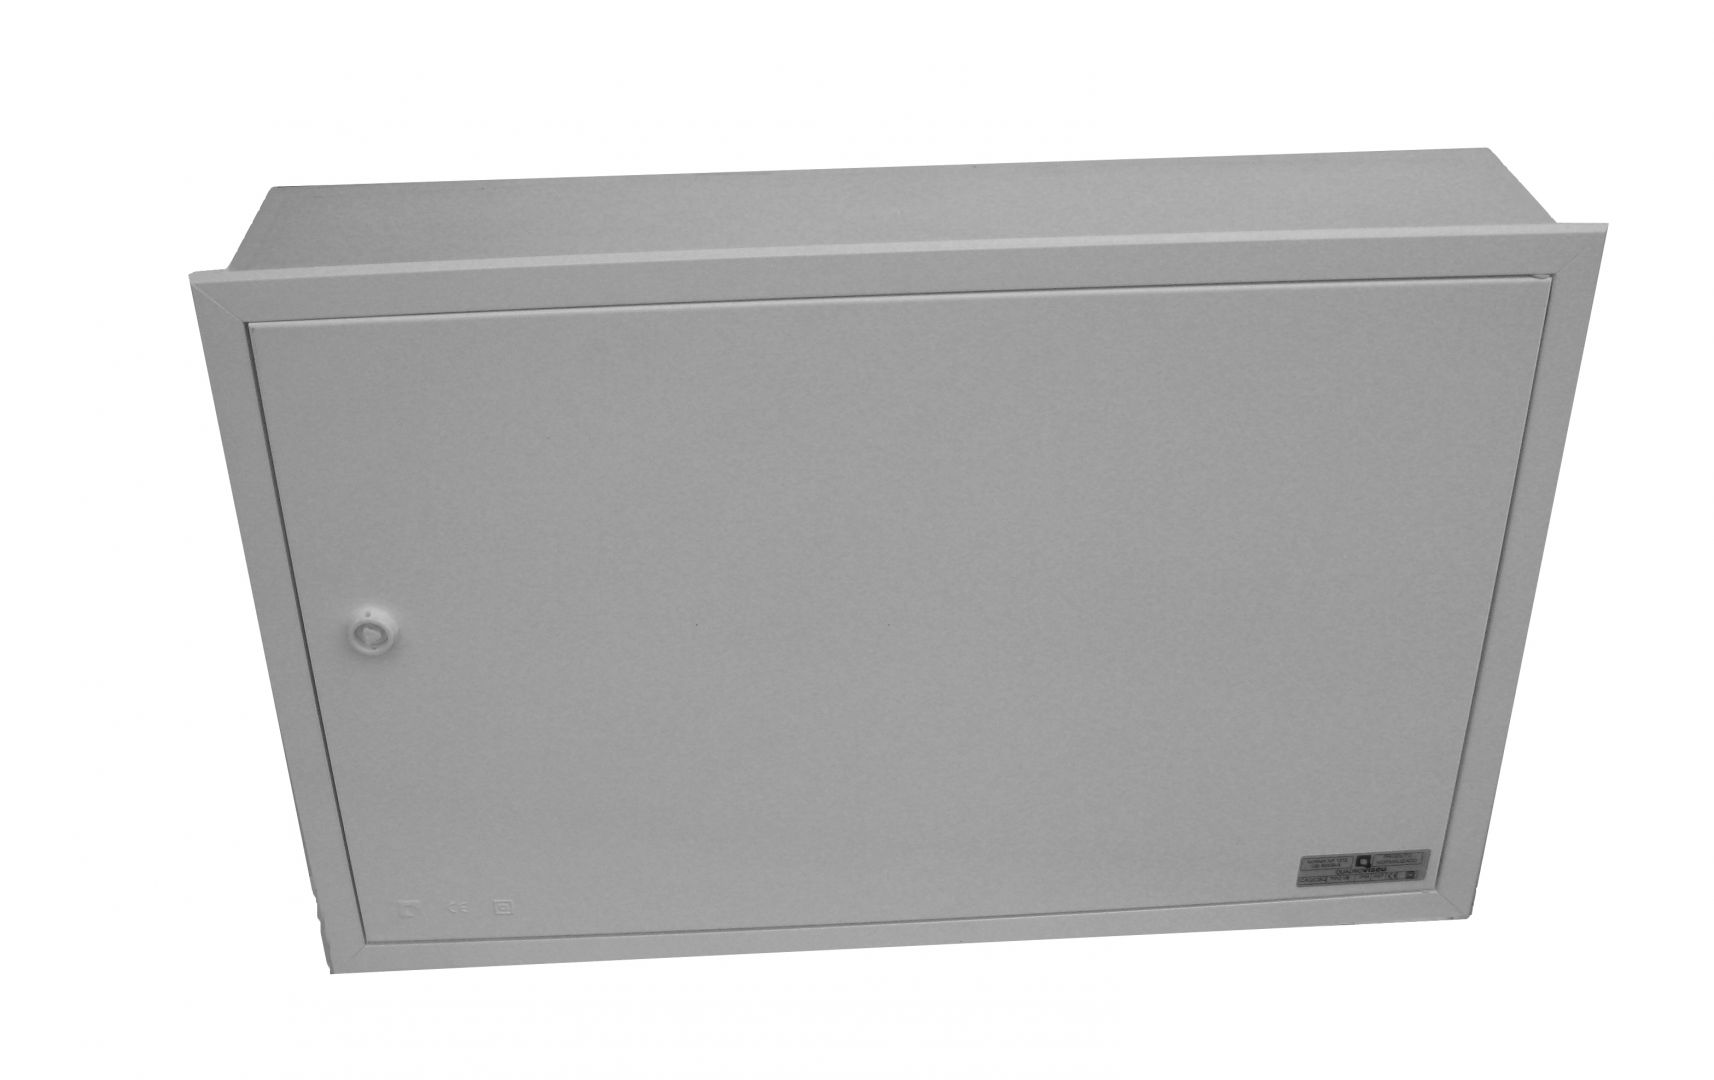 EMPTY BUILT-IN VISBOX BOX WITH DOOR AND FRAME 500X400X130